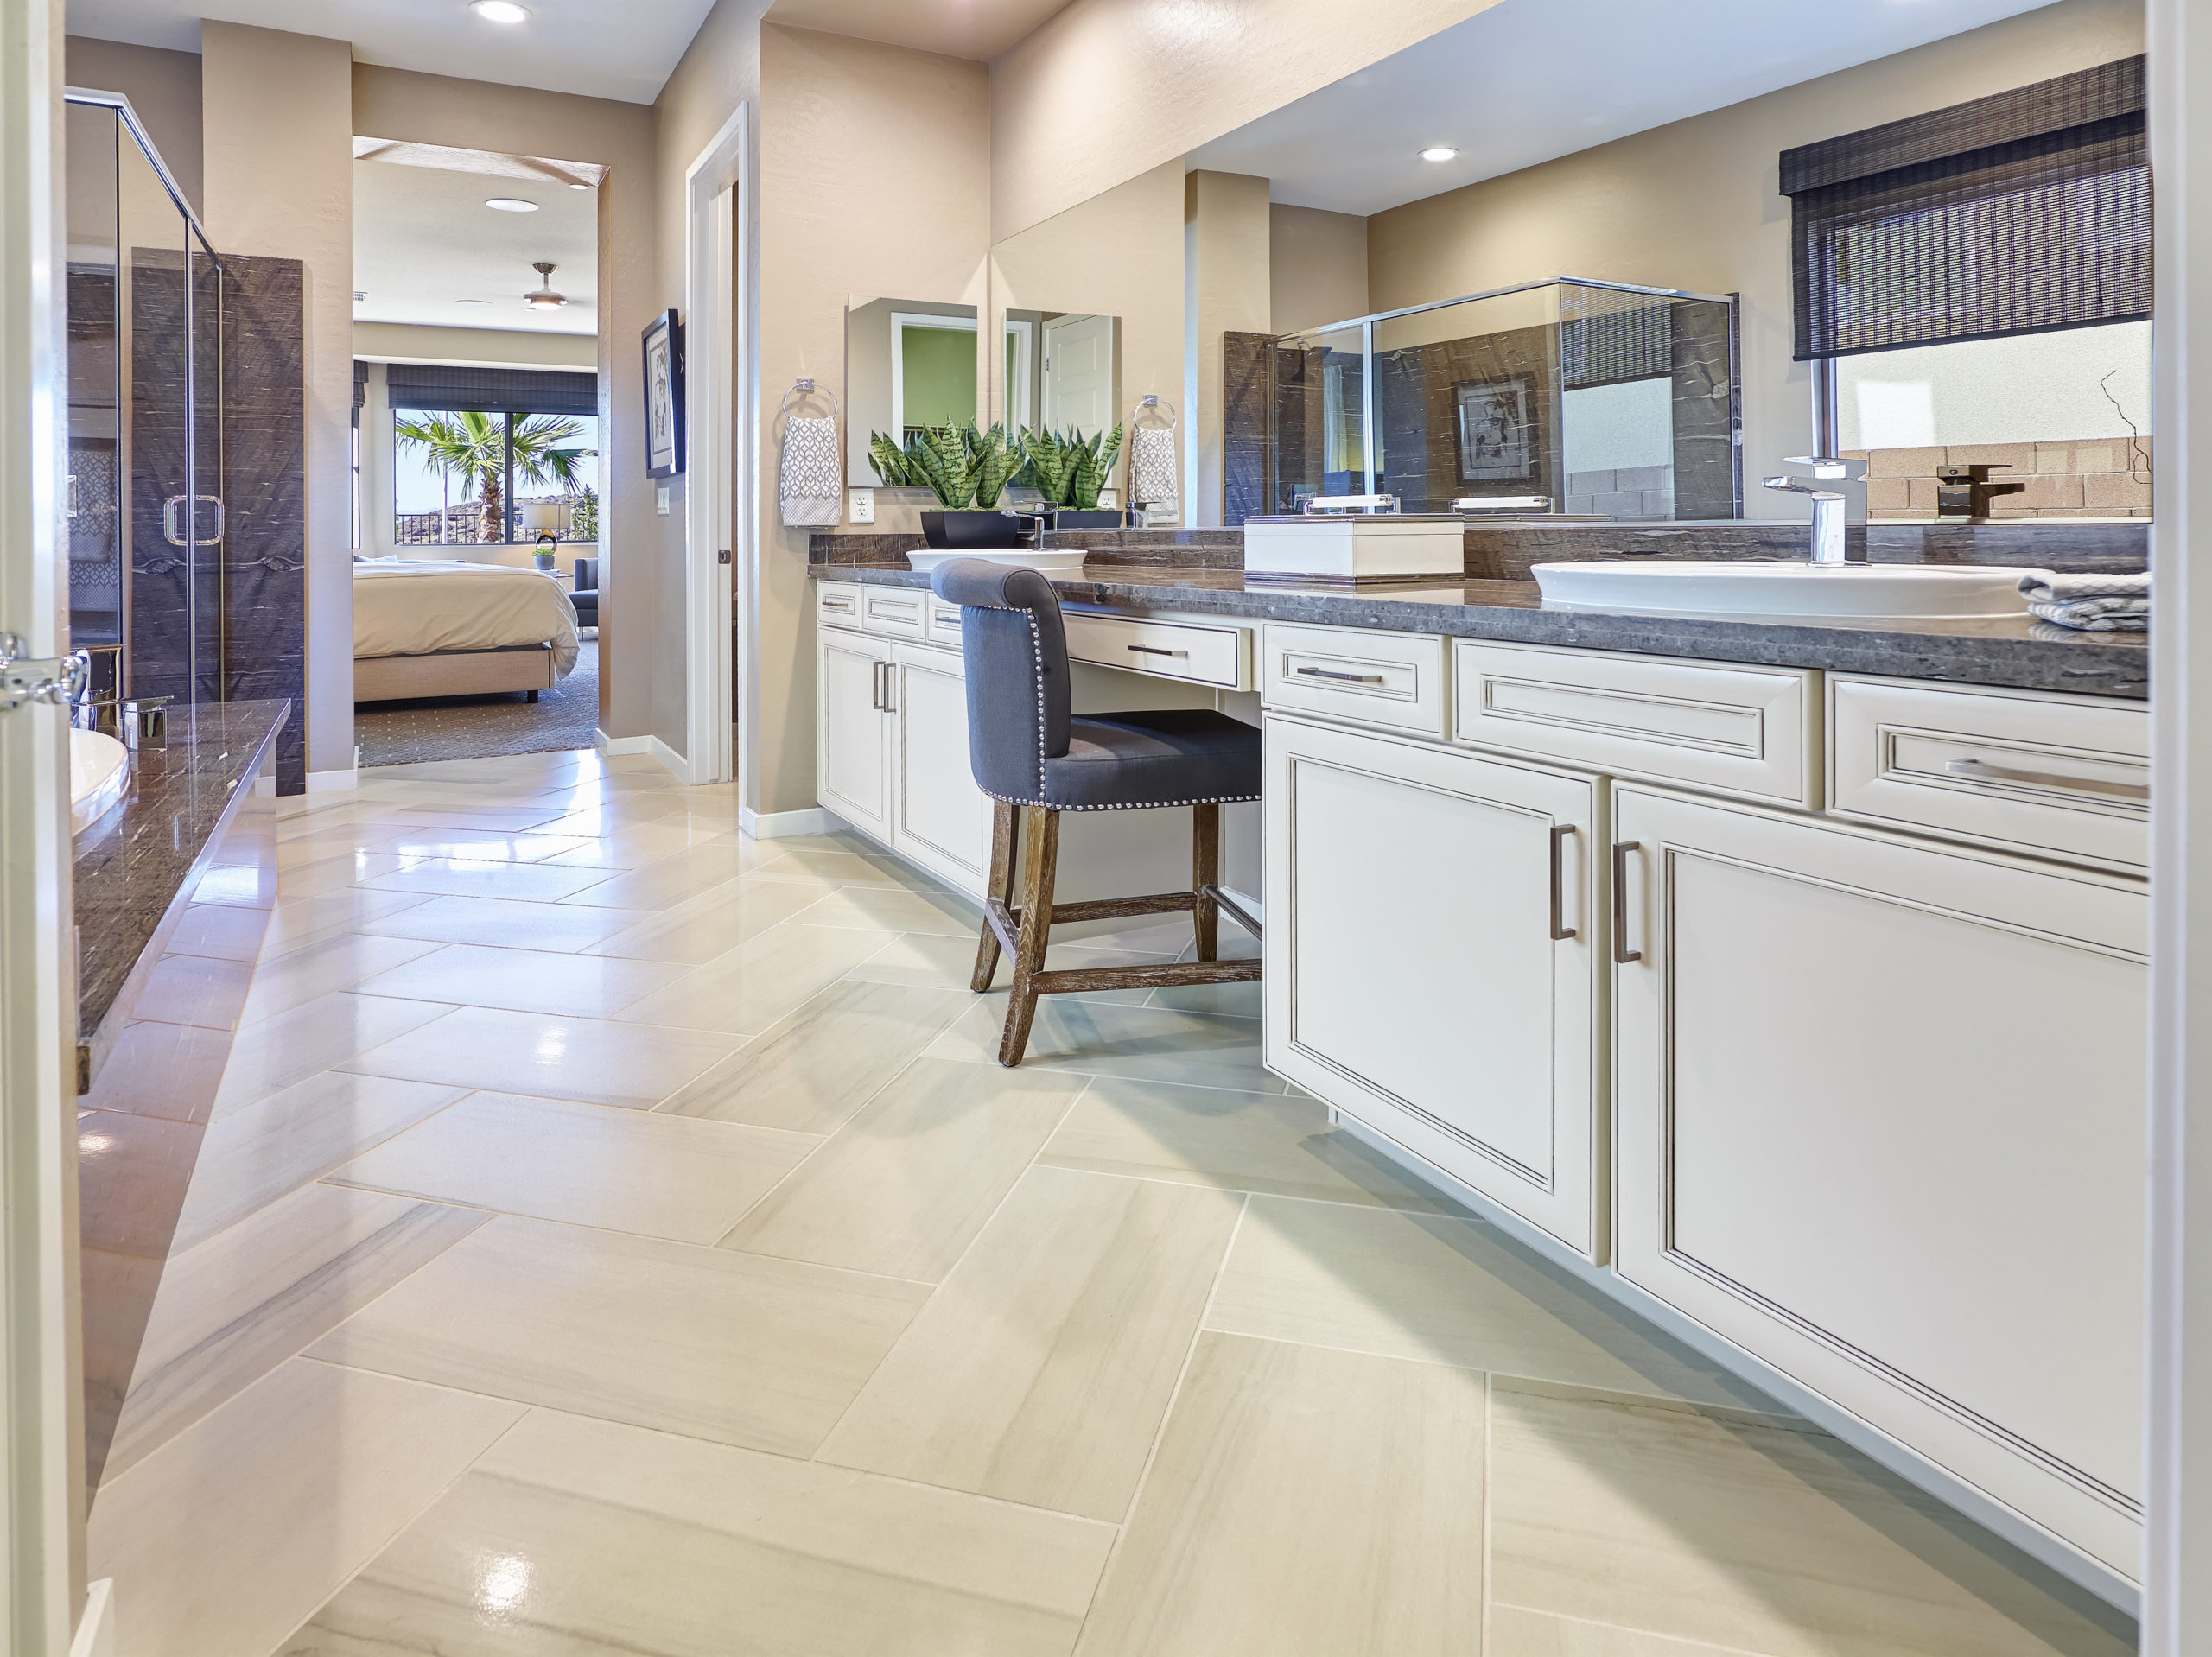 Superior Cabinet Supply - Kitchen Cabinets Frankfort, New ...